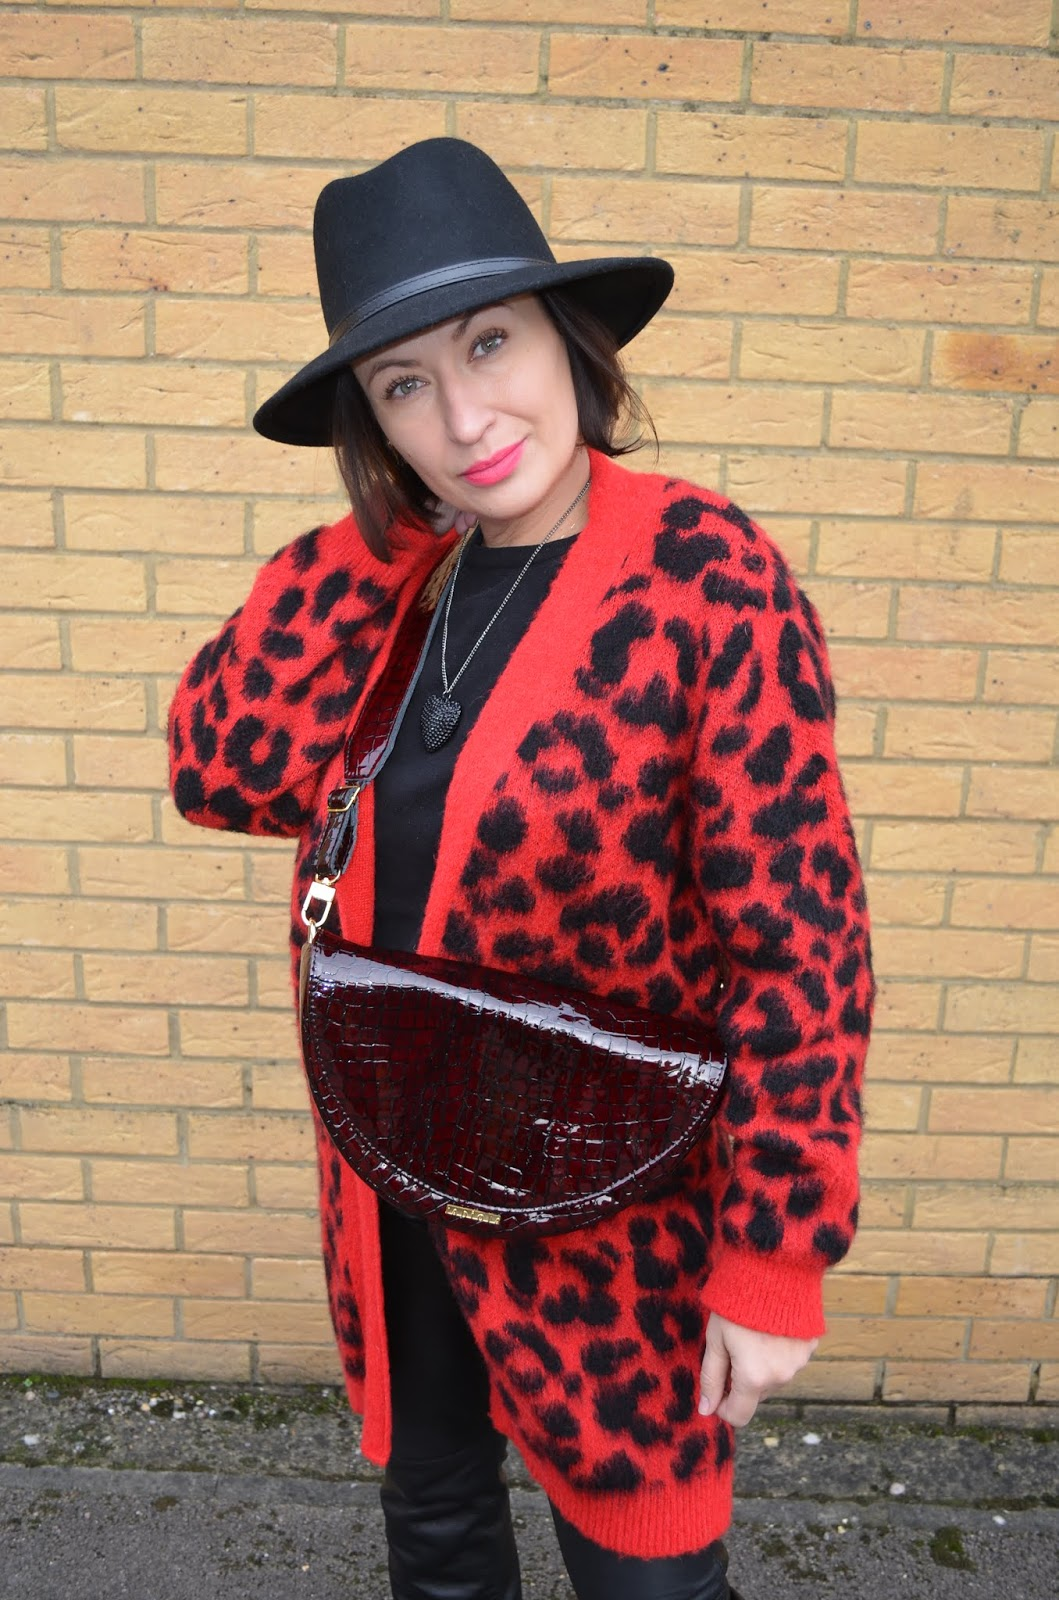 Blogerka Modowa, Blog modowy, Adriana Style Blog, moda po 30-ce, moda, fashion, panterka, skóra, leather, leopard print, black & red, hat, kapelusz, fashion 30+, fabiola bag,